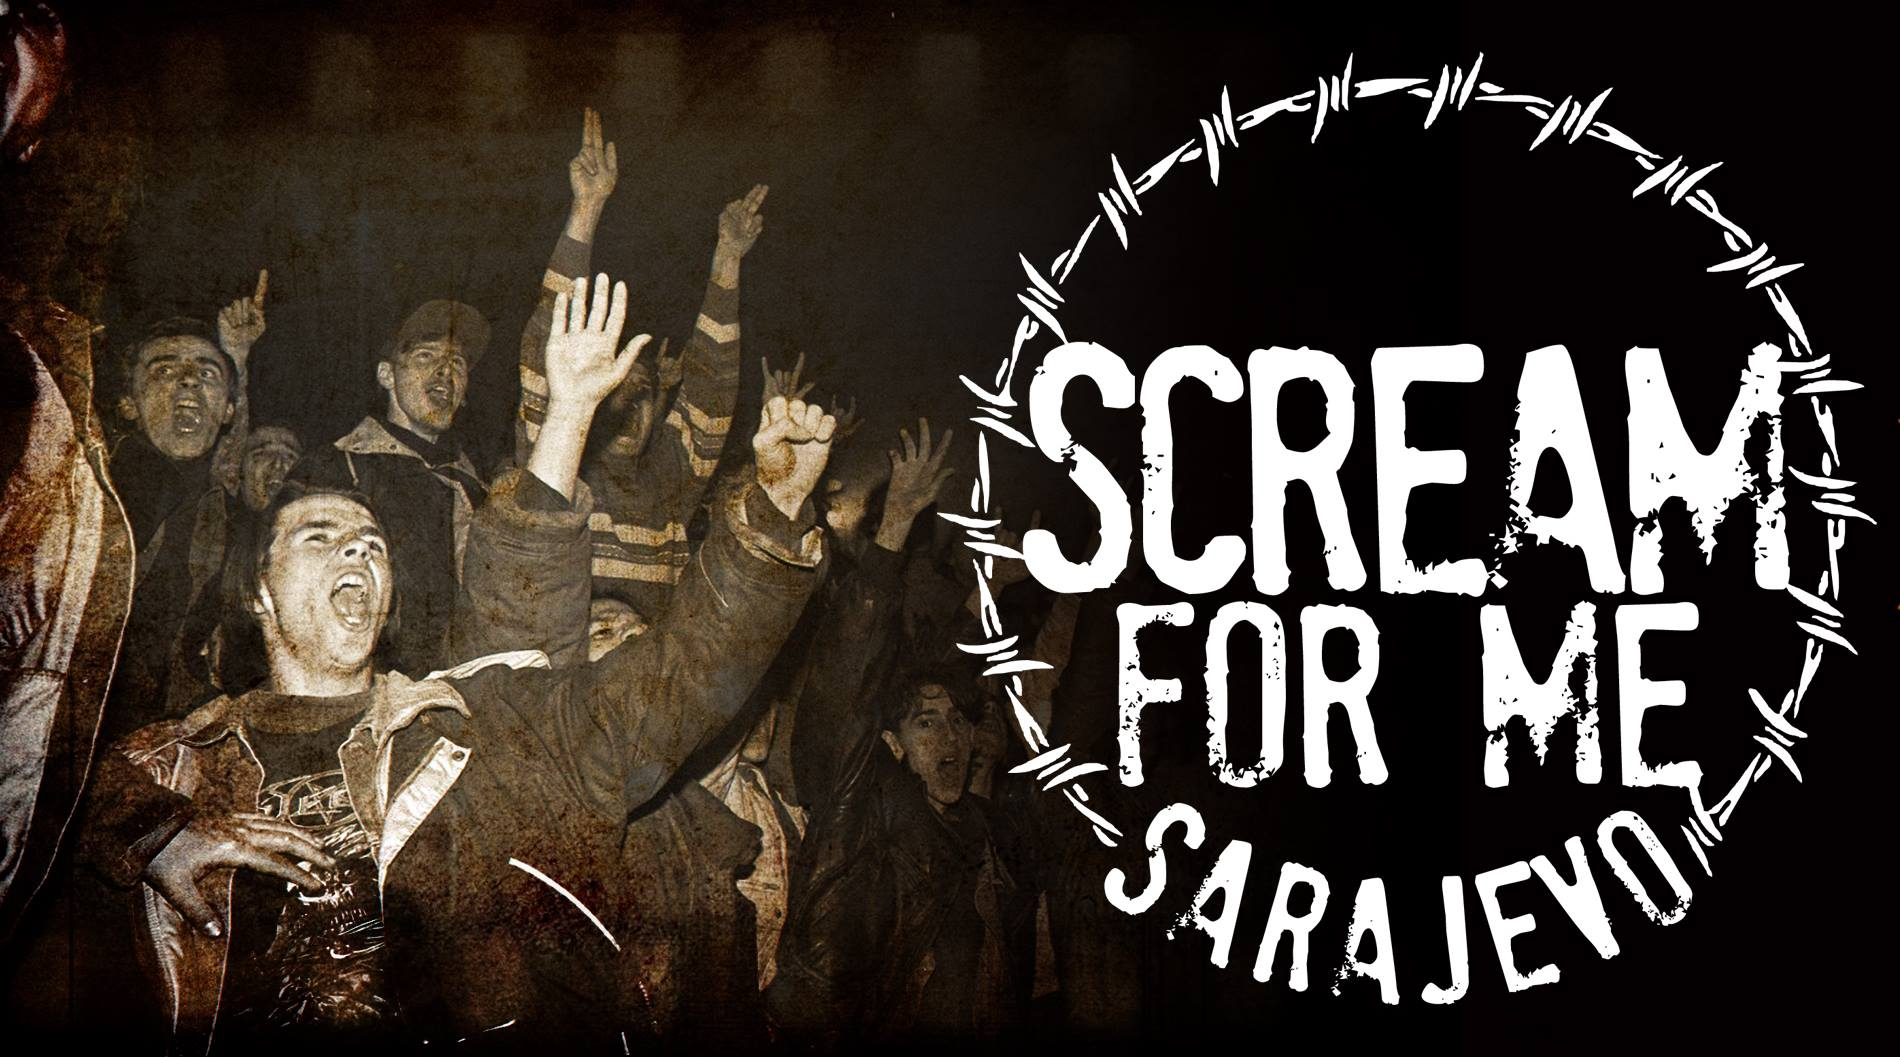 projekcija-filma-scream-for-me-sarajevo-na-impulse-festivalu